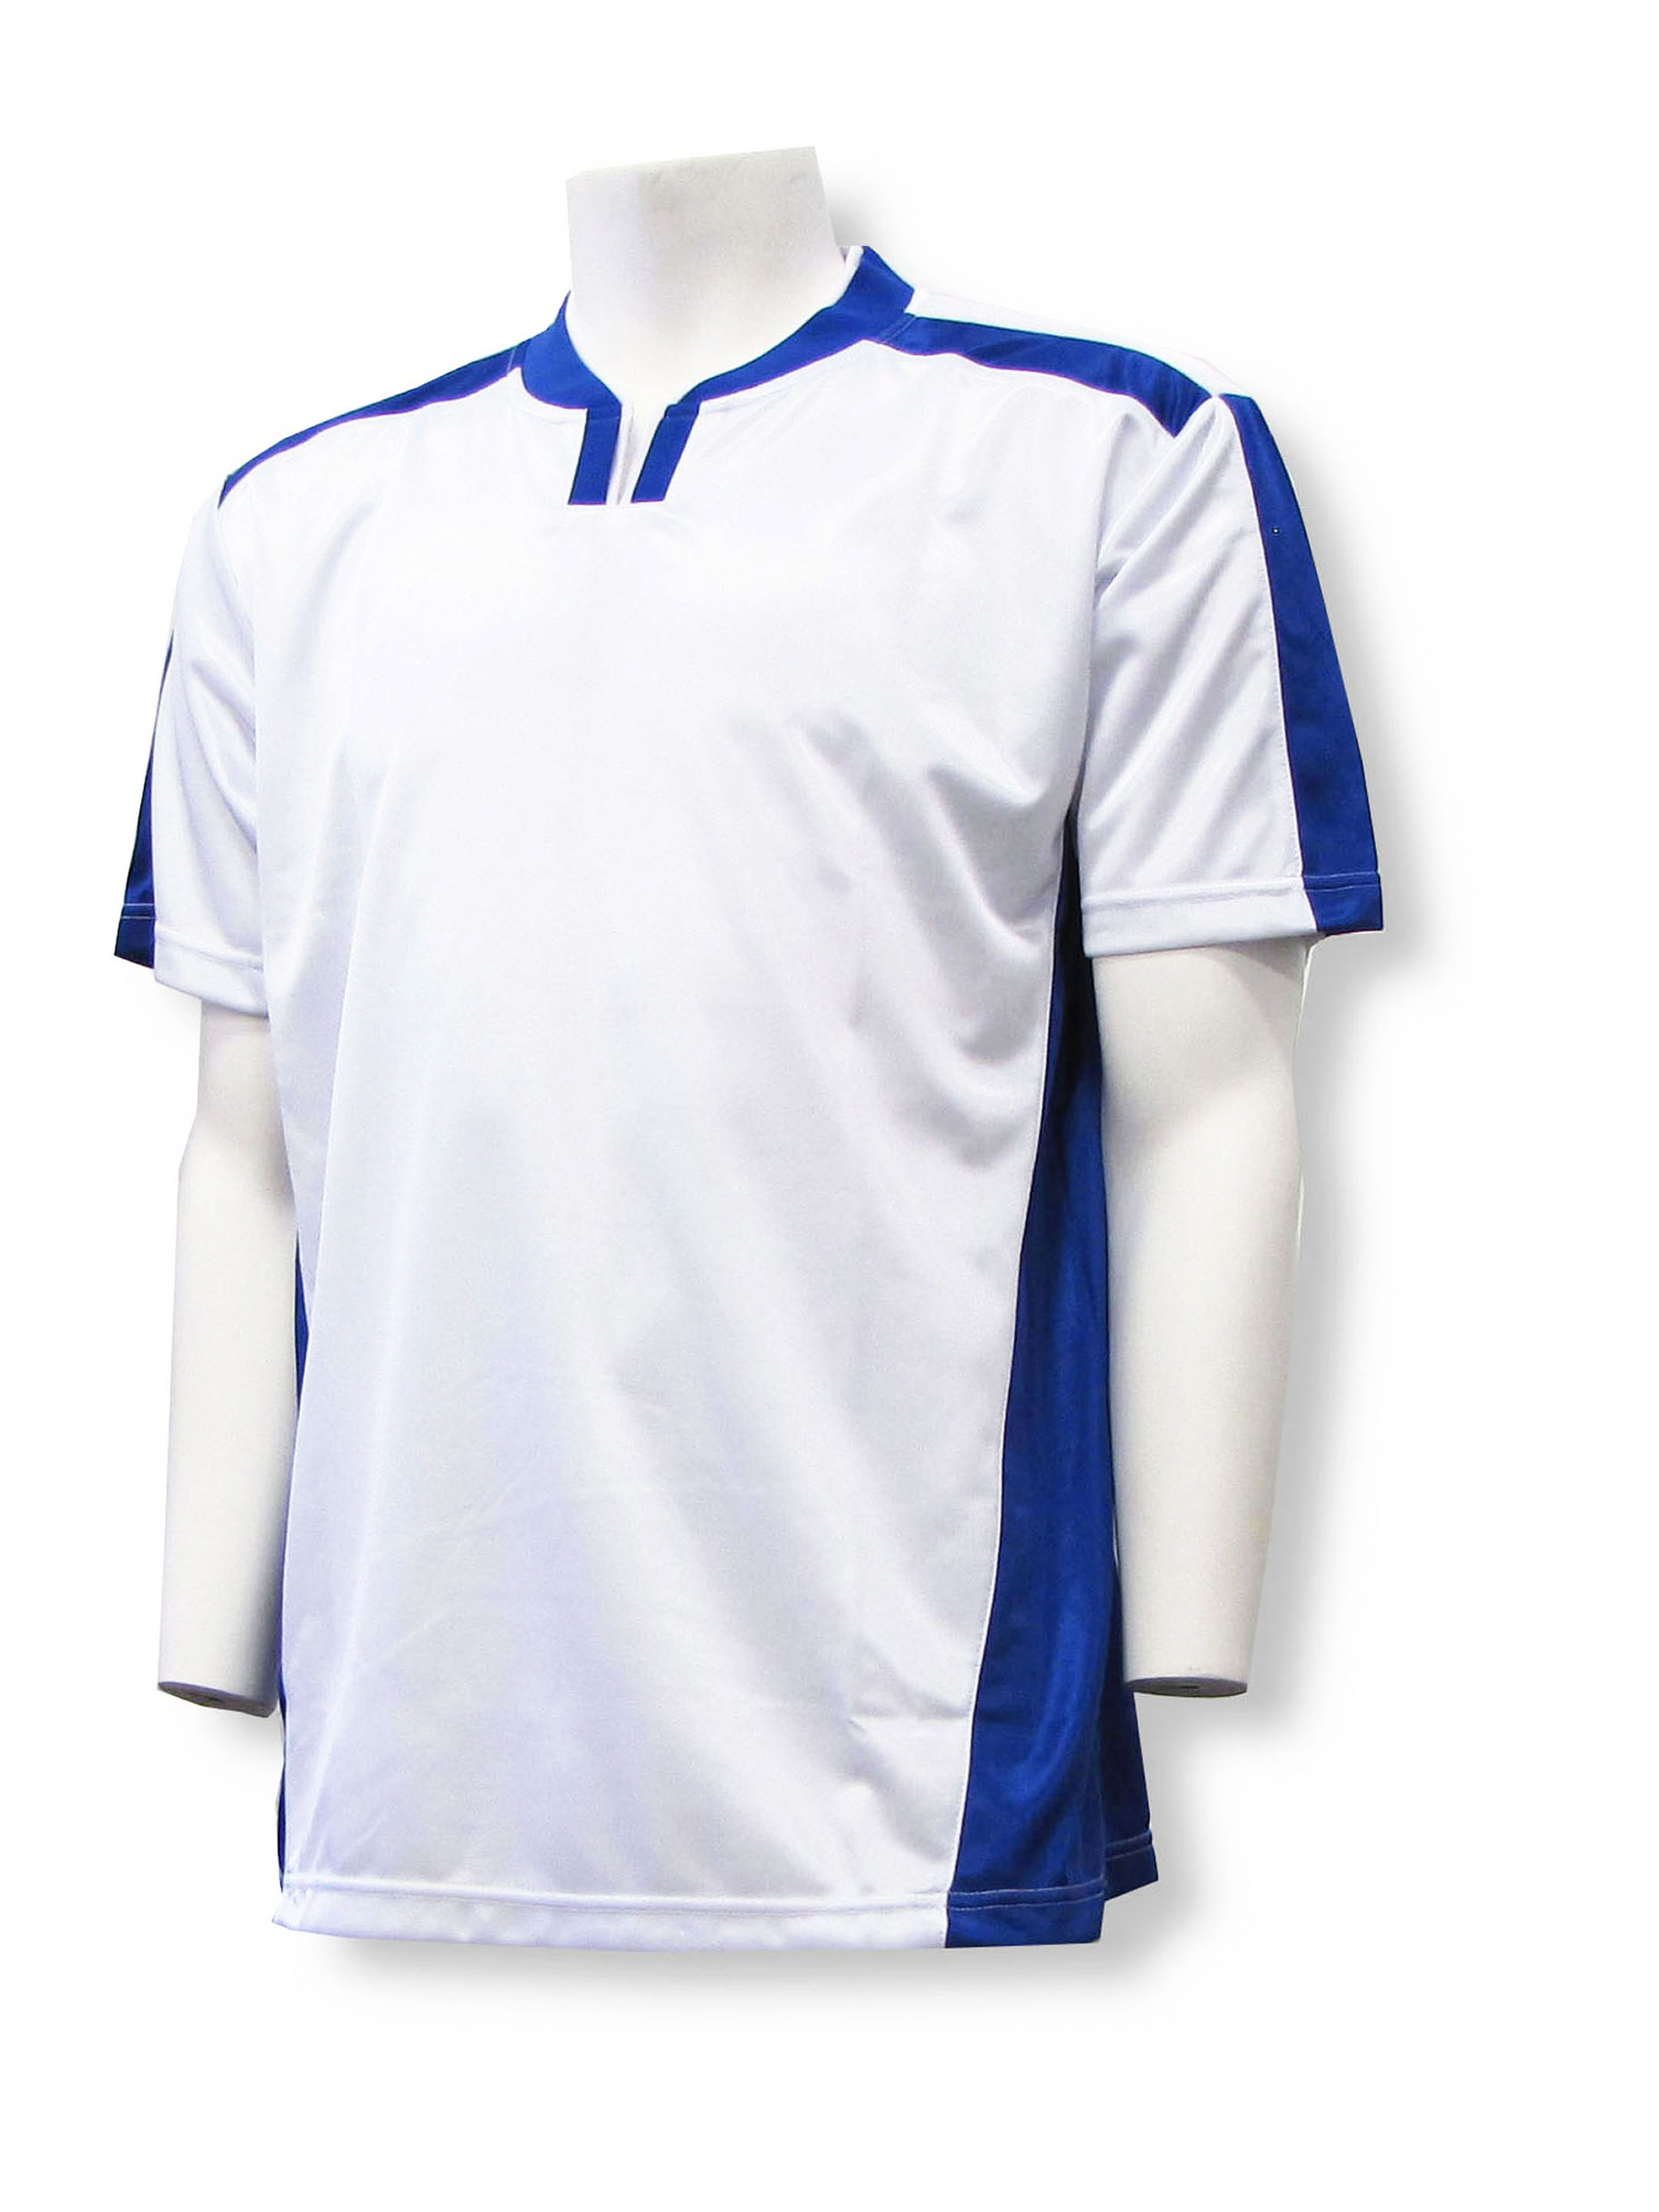 Winchester soccer jersey in white/royal by Code Four Athletics